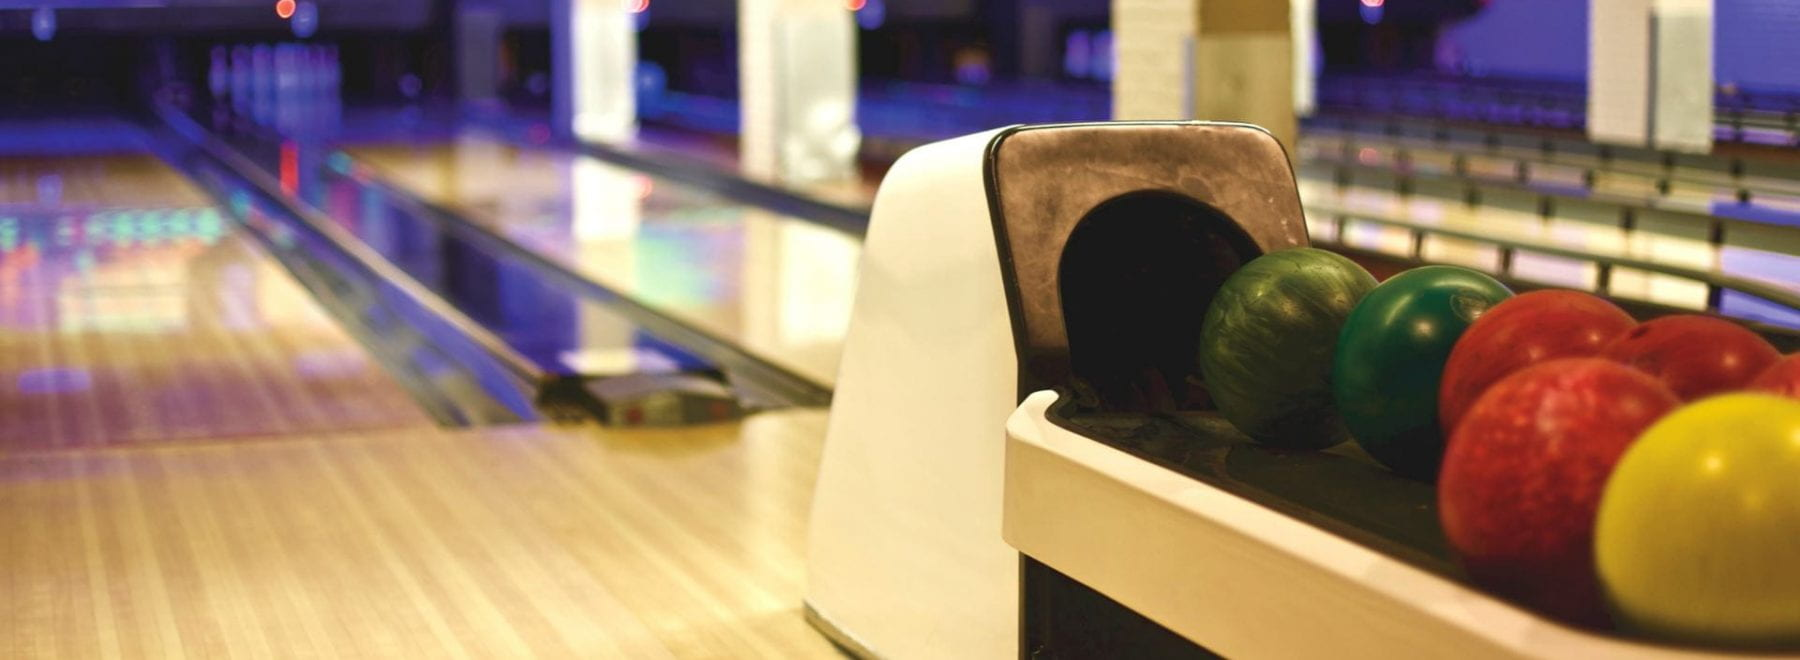 Bowling alley with bowling balls